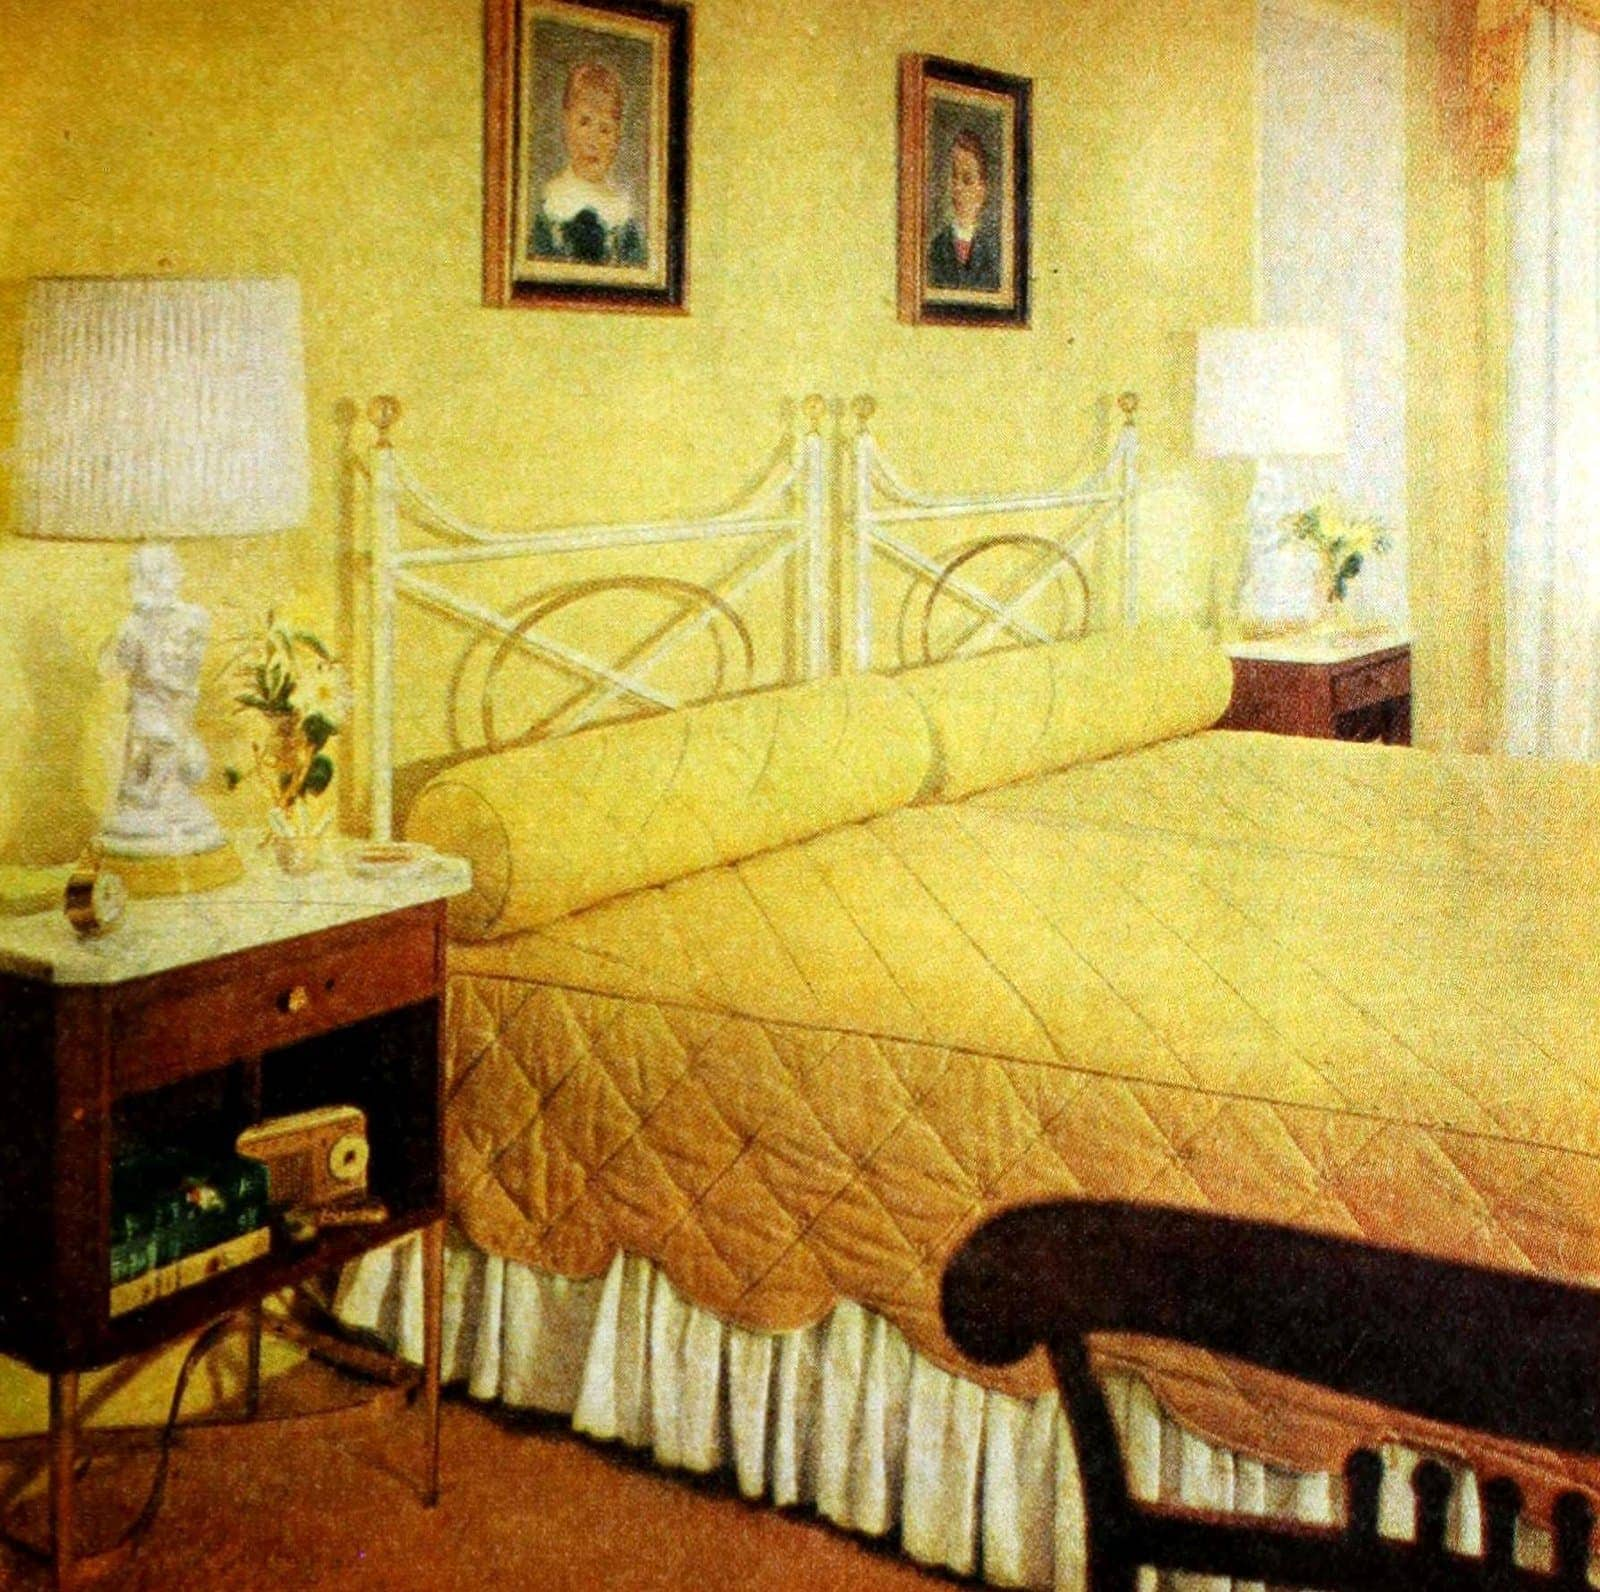 Vintage gold yellow bedroom decor from the 50s (3)